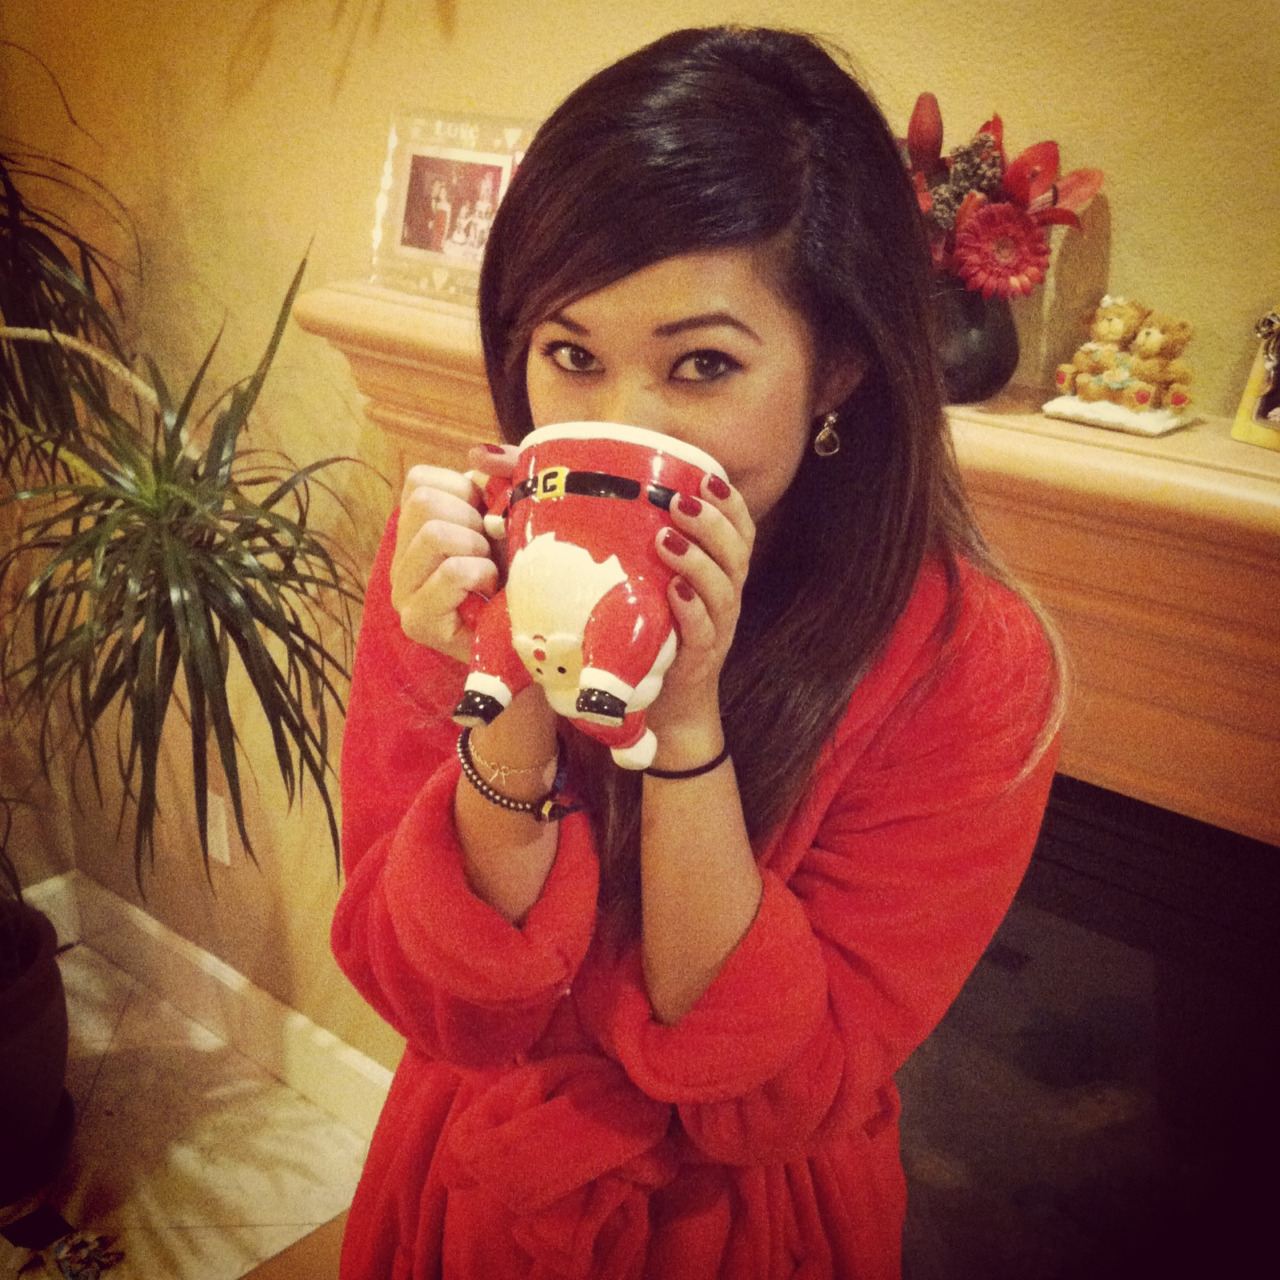 A merry Christmas indeed. Me in my new robe sippin on my new Santa mug hehe :)